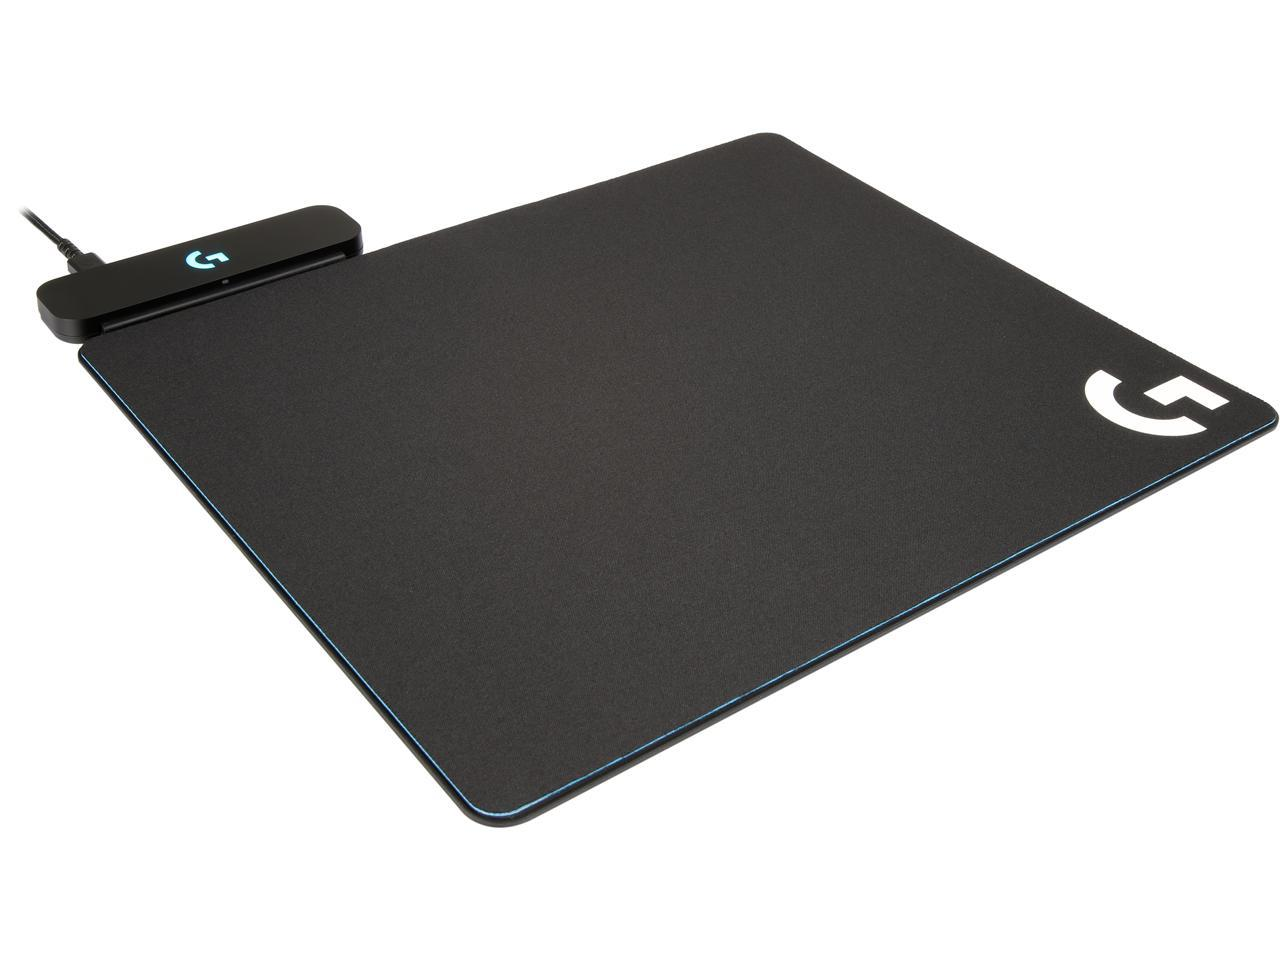 Details about Logitech G Powerplay Wireless Charging System for G703, G903,  G502 Lightspeed Wi